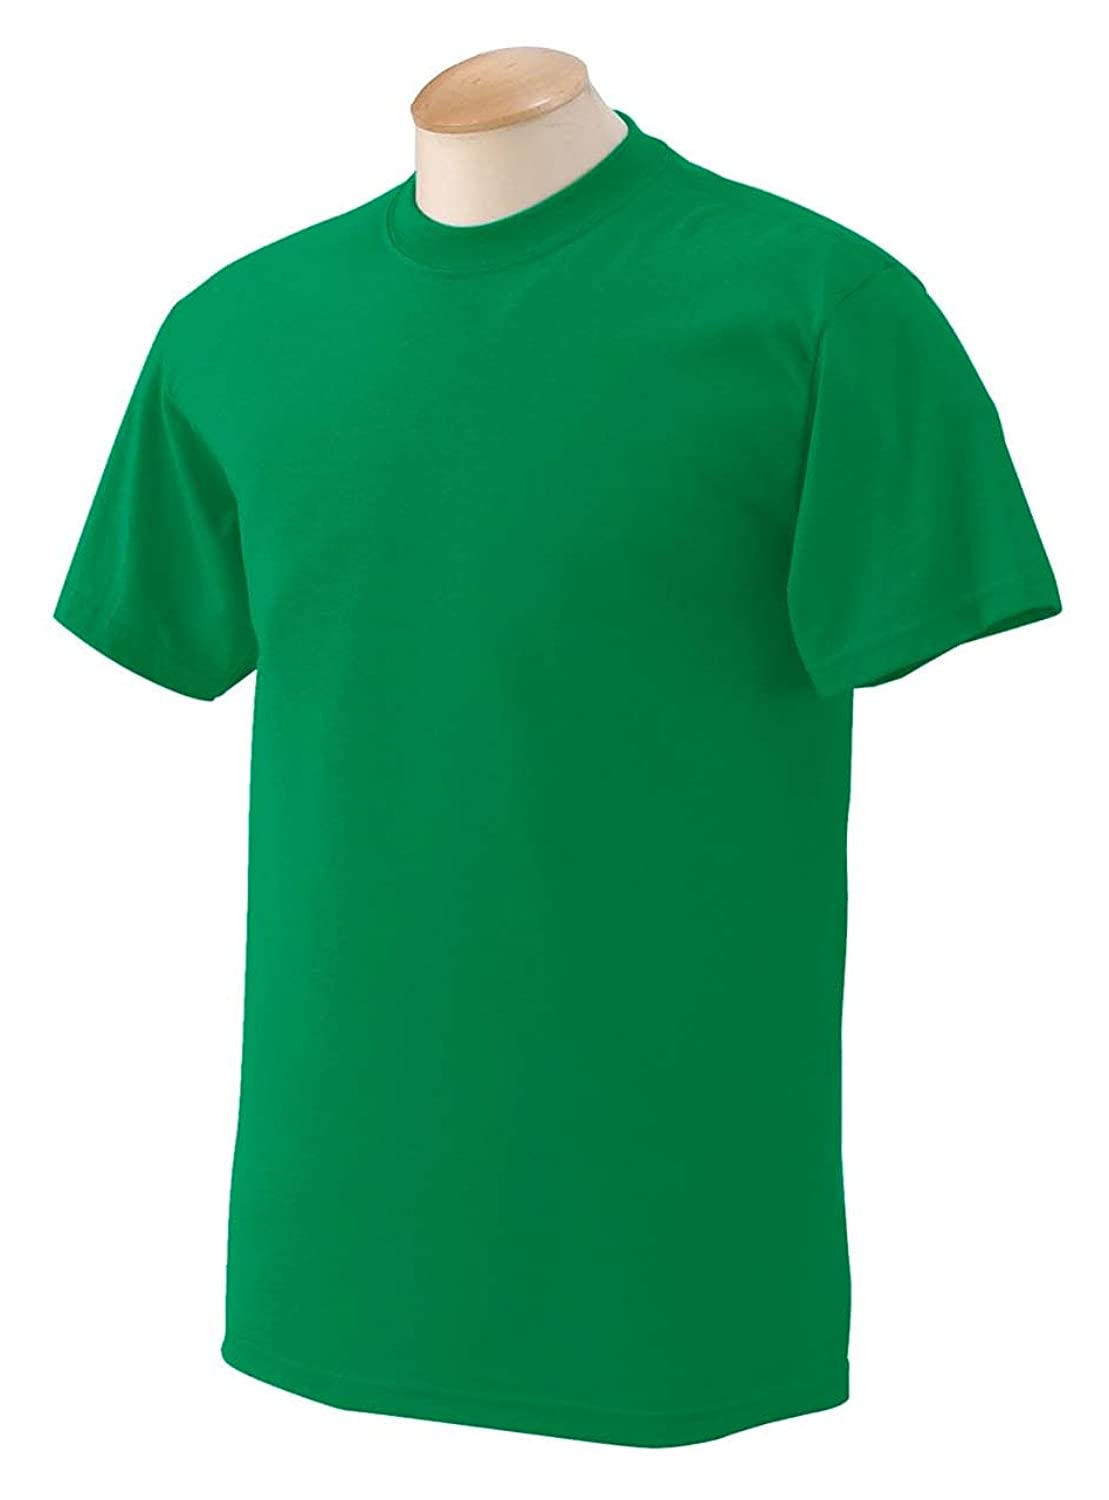 50/50 Ultra Blend Tee Shirt, Color: Irish Green, Size: XX-Large